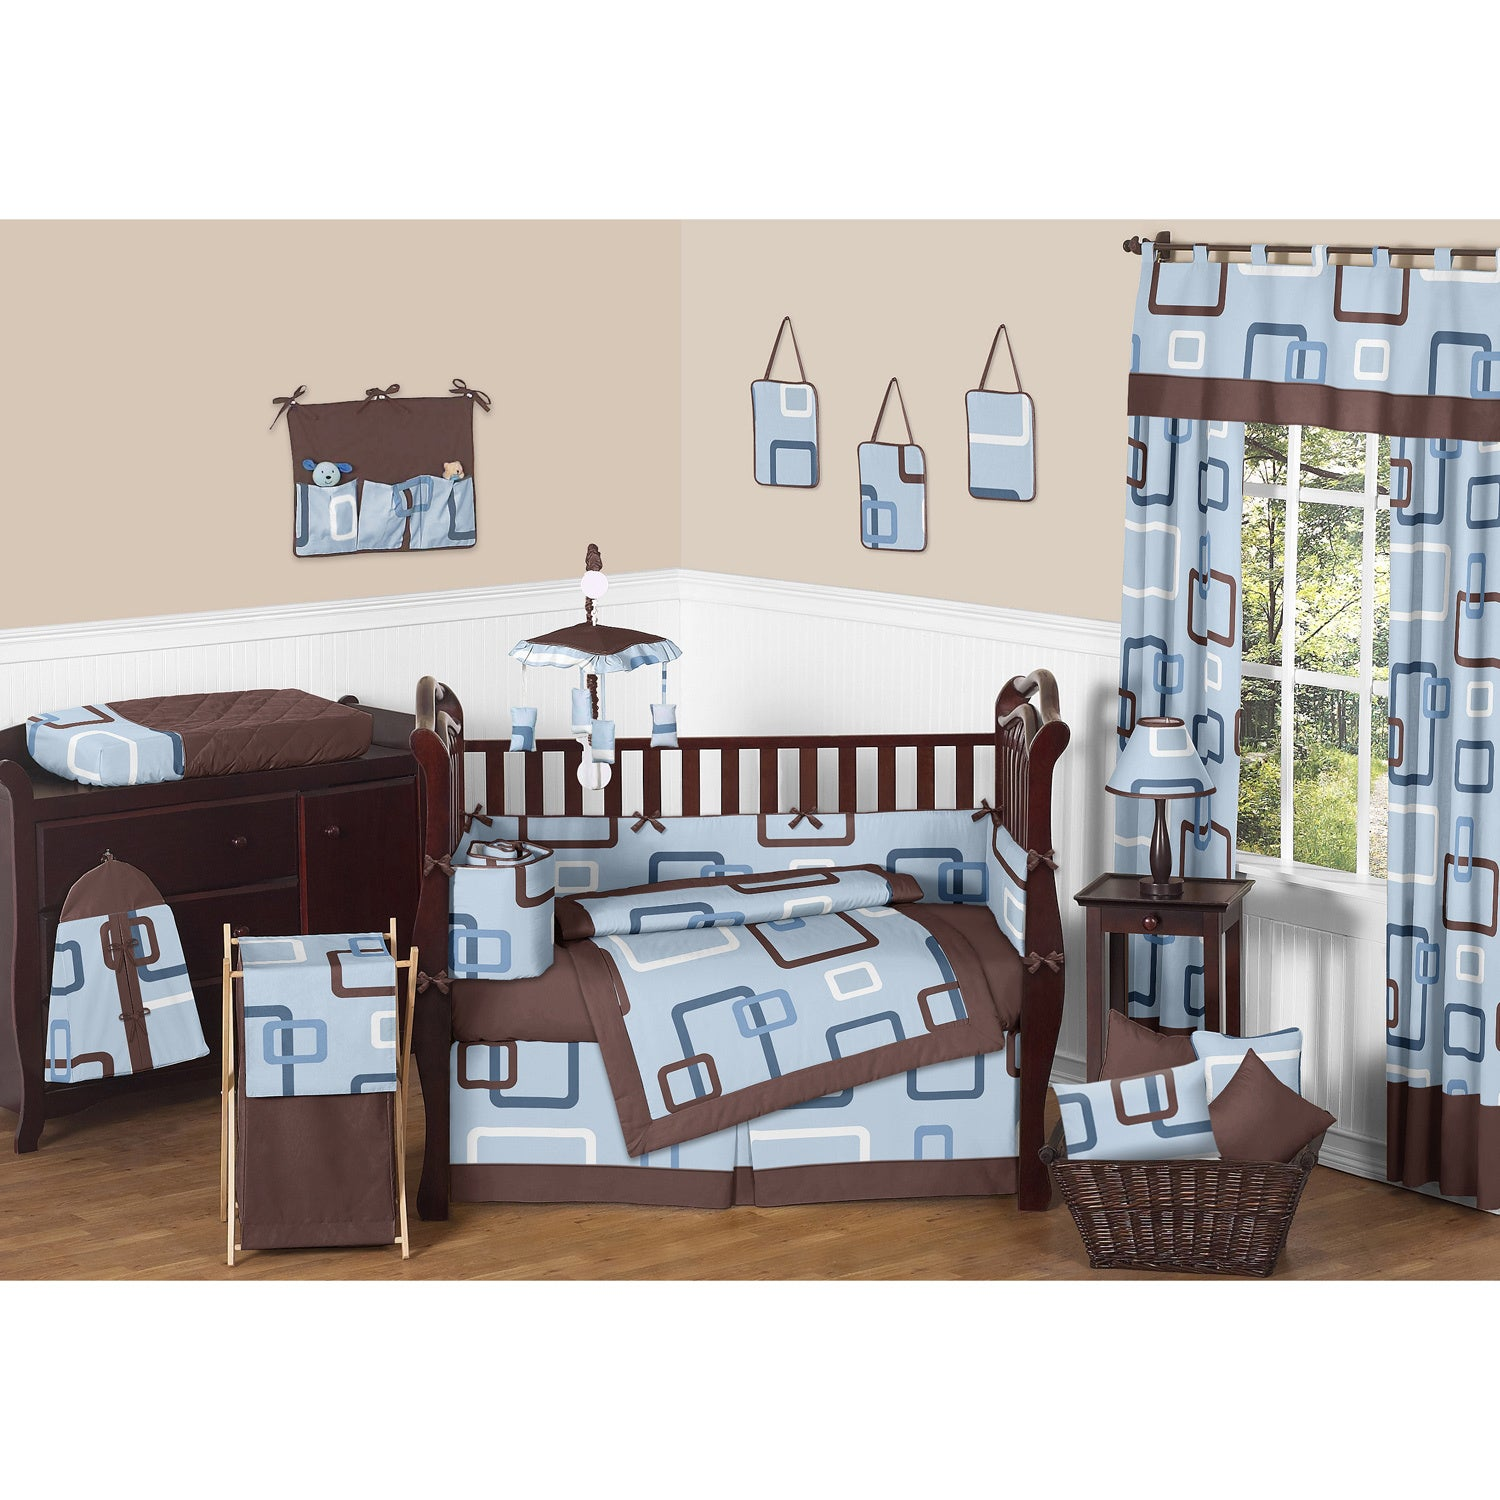 9pc crib bedding set baby bedding bedding sets collections